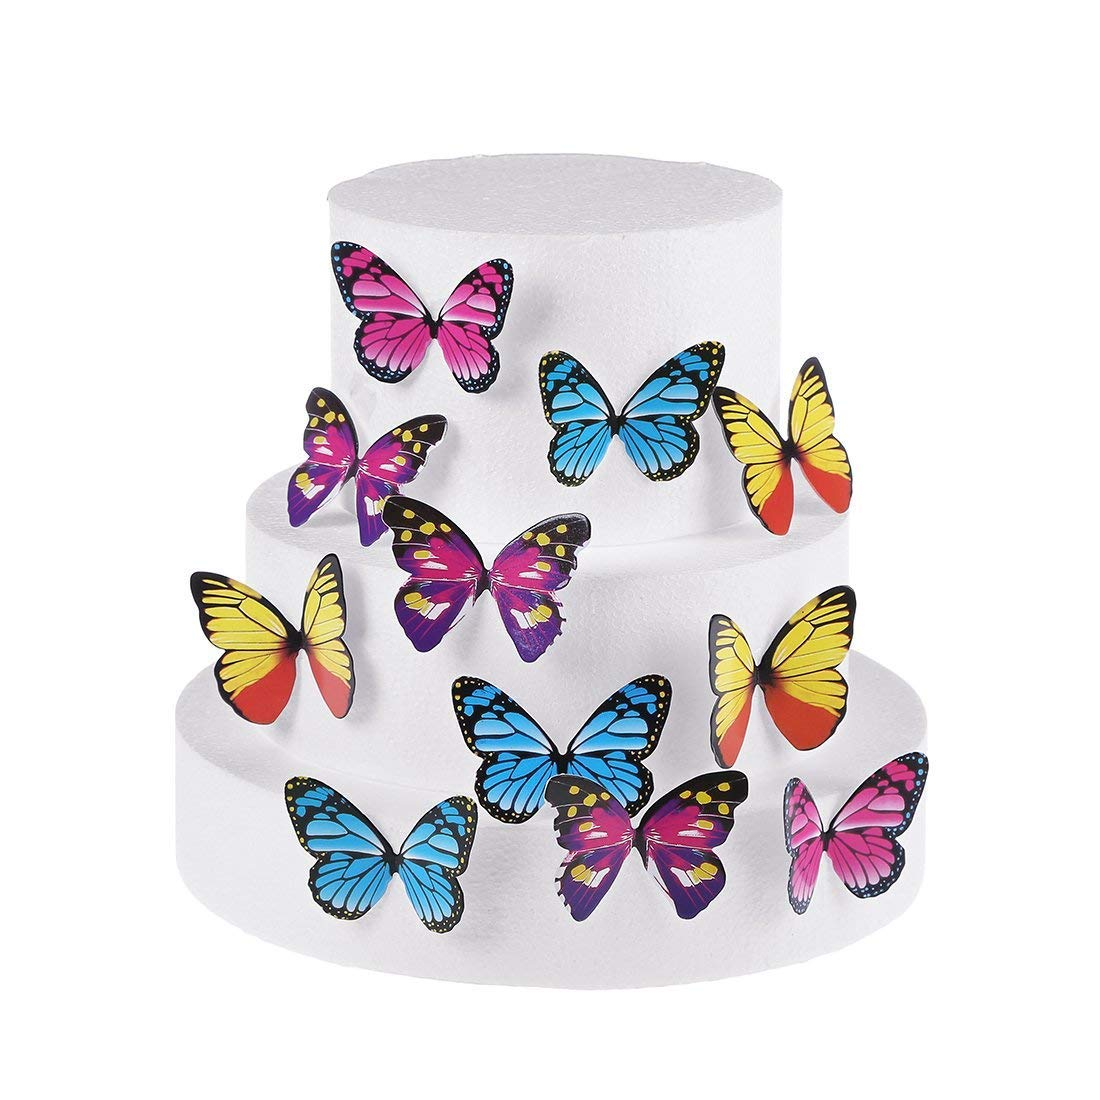 Set of 30 Edible Cupcake Toppers Wedding Cake Birthday Party Food Decoration Mixed Size & Colour (Butterfly) Kootips-1-4411